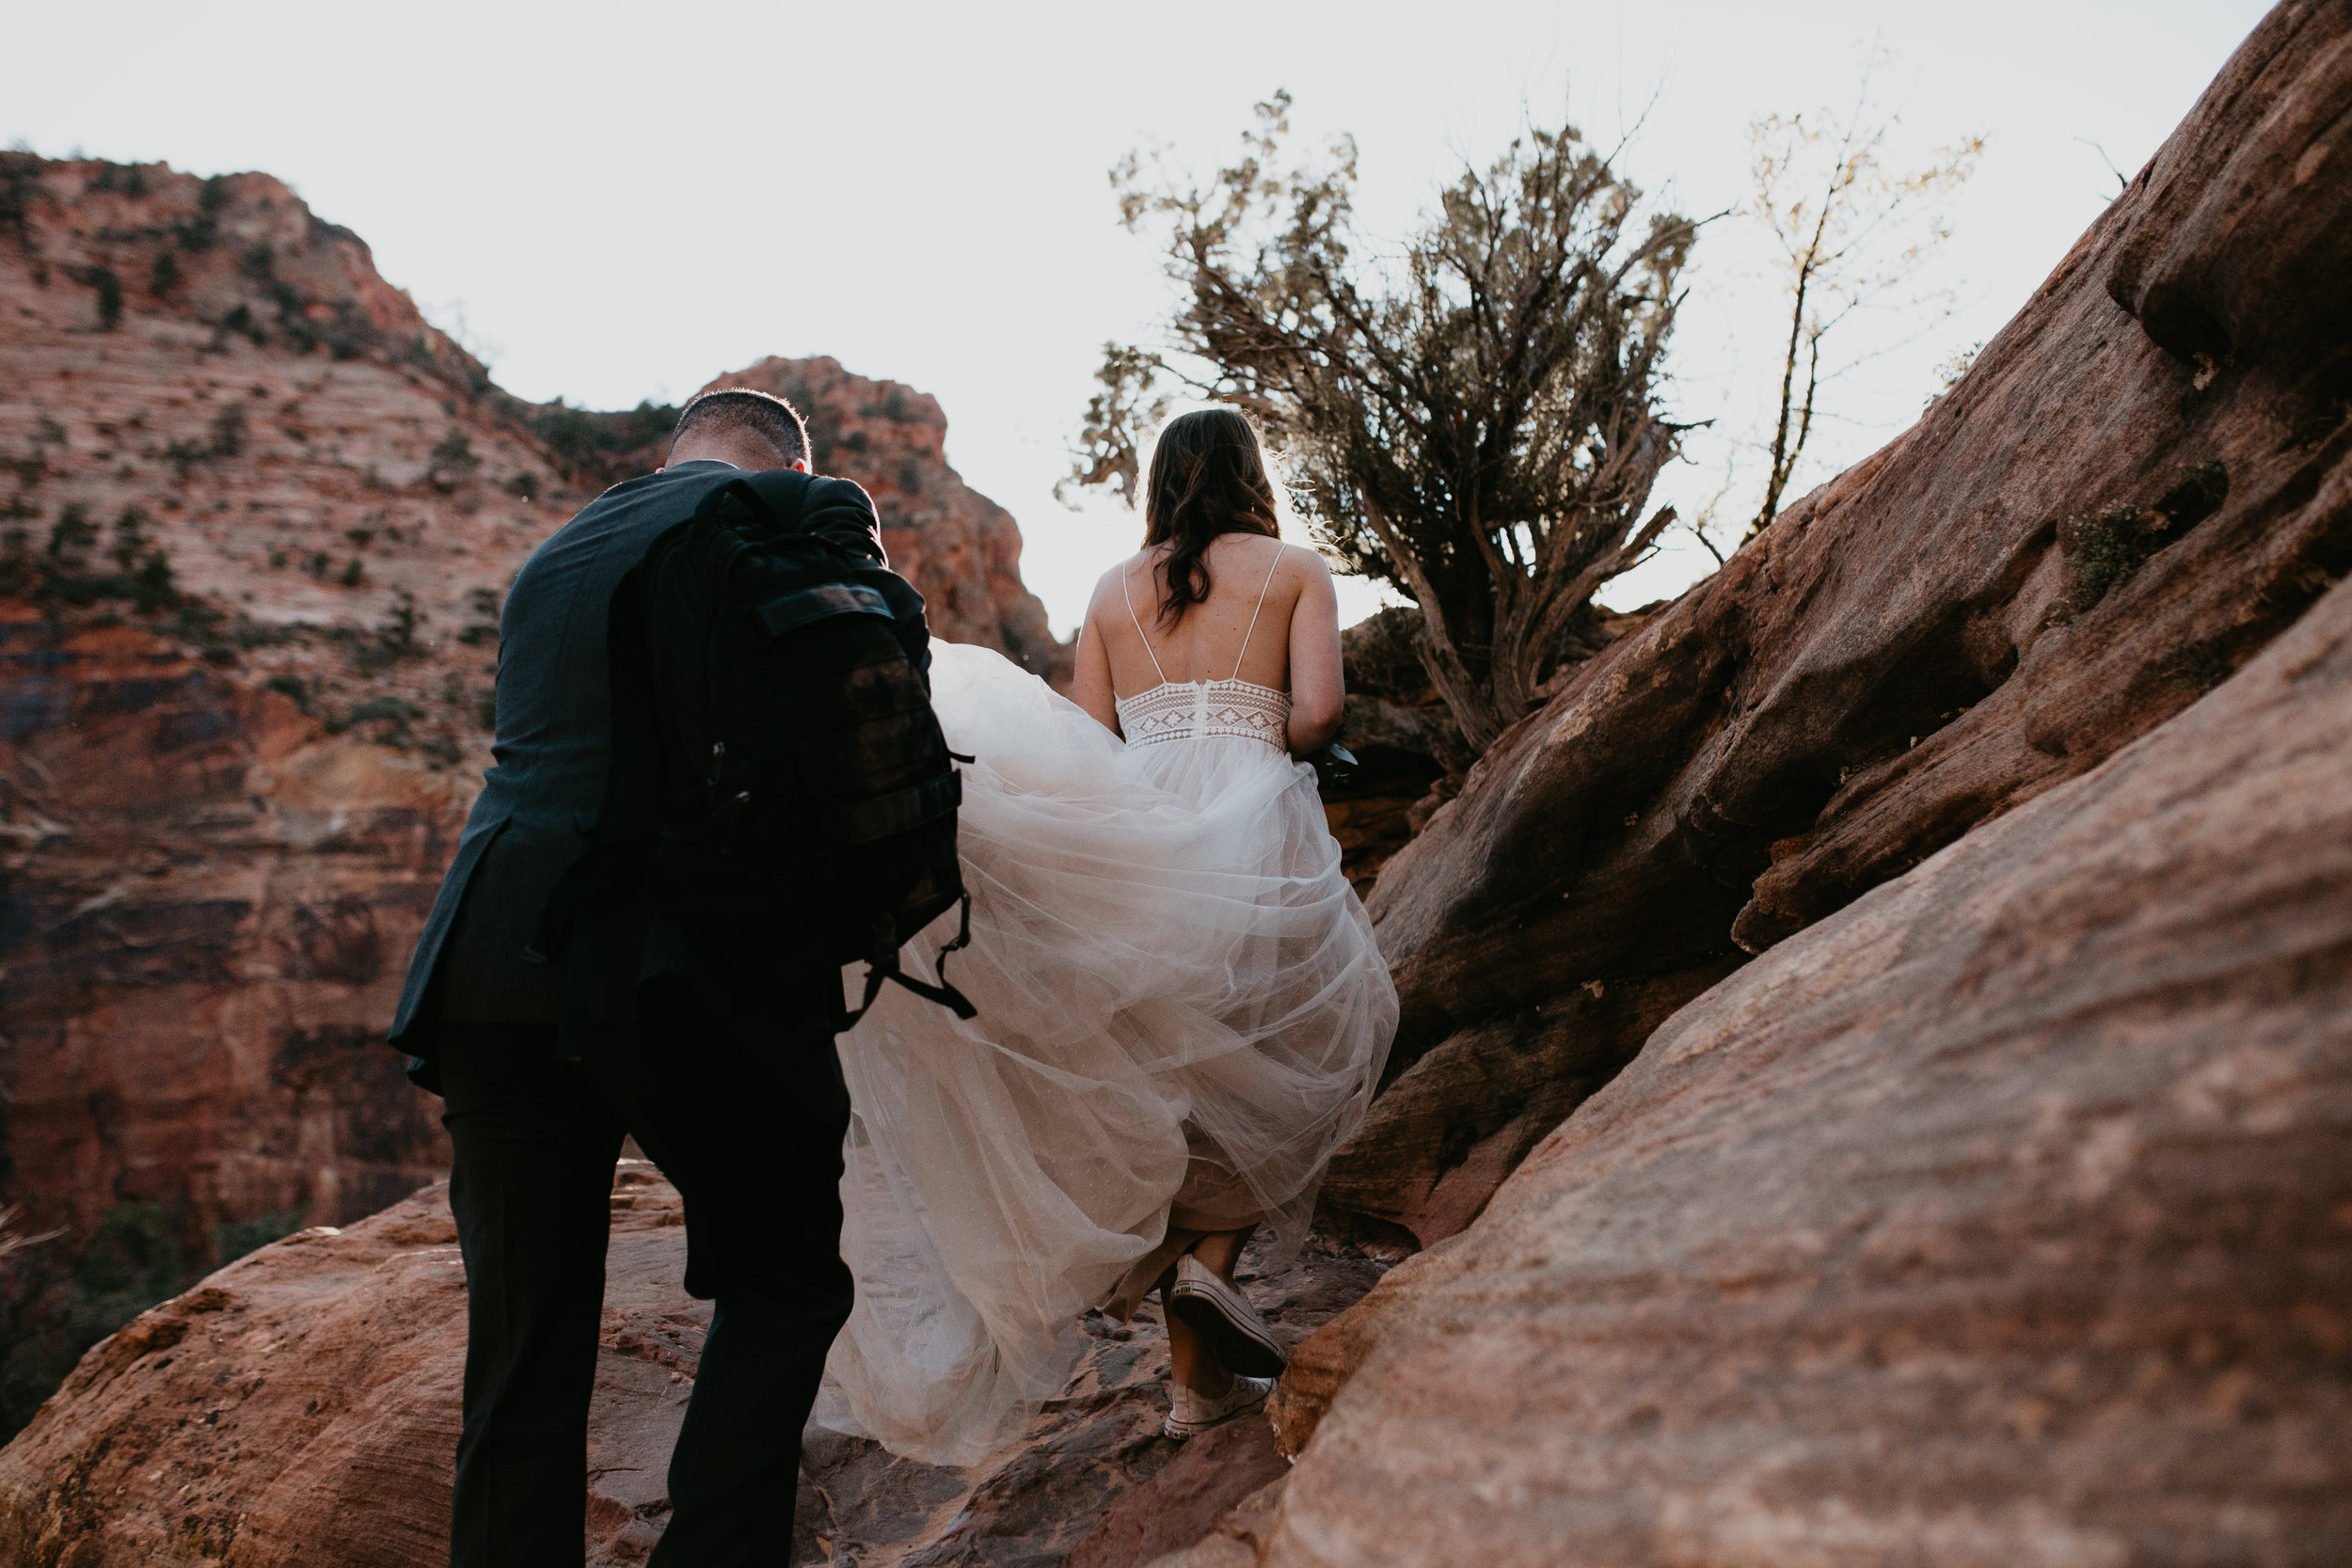 nicole-daacke-photography-zion-national-park-elopement-photographer-canyon-overlook-trail-elope-hiking-adventure-wedding-photos-fall-utah-red-rock-canyon-stgeorge-eloping-photographer-37.jpg